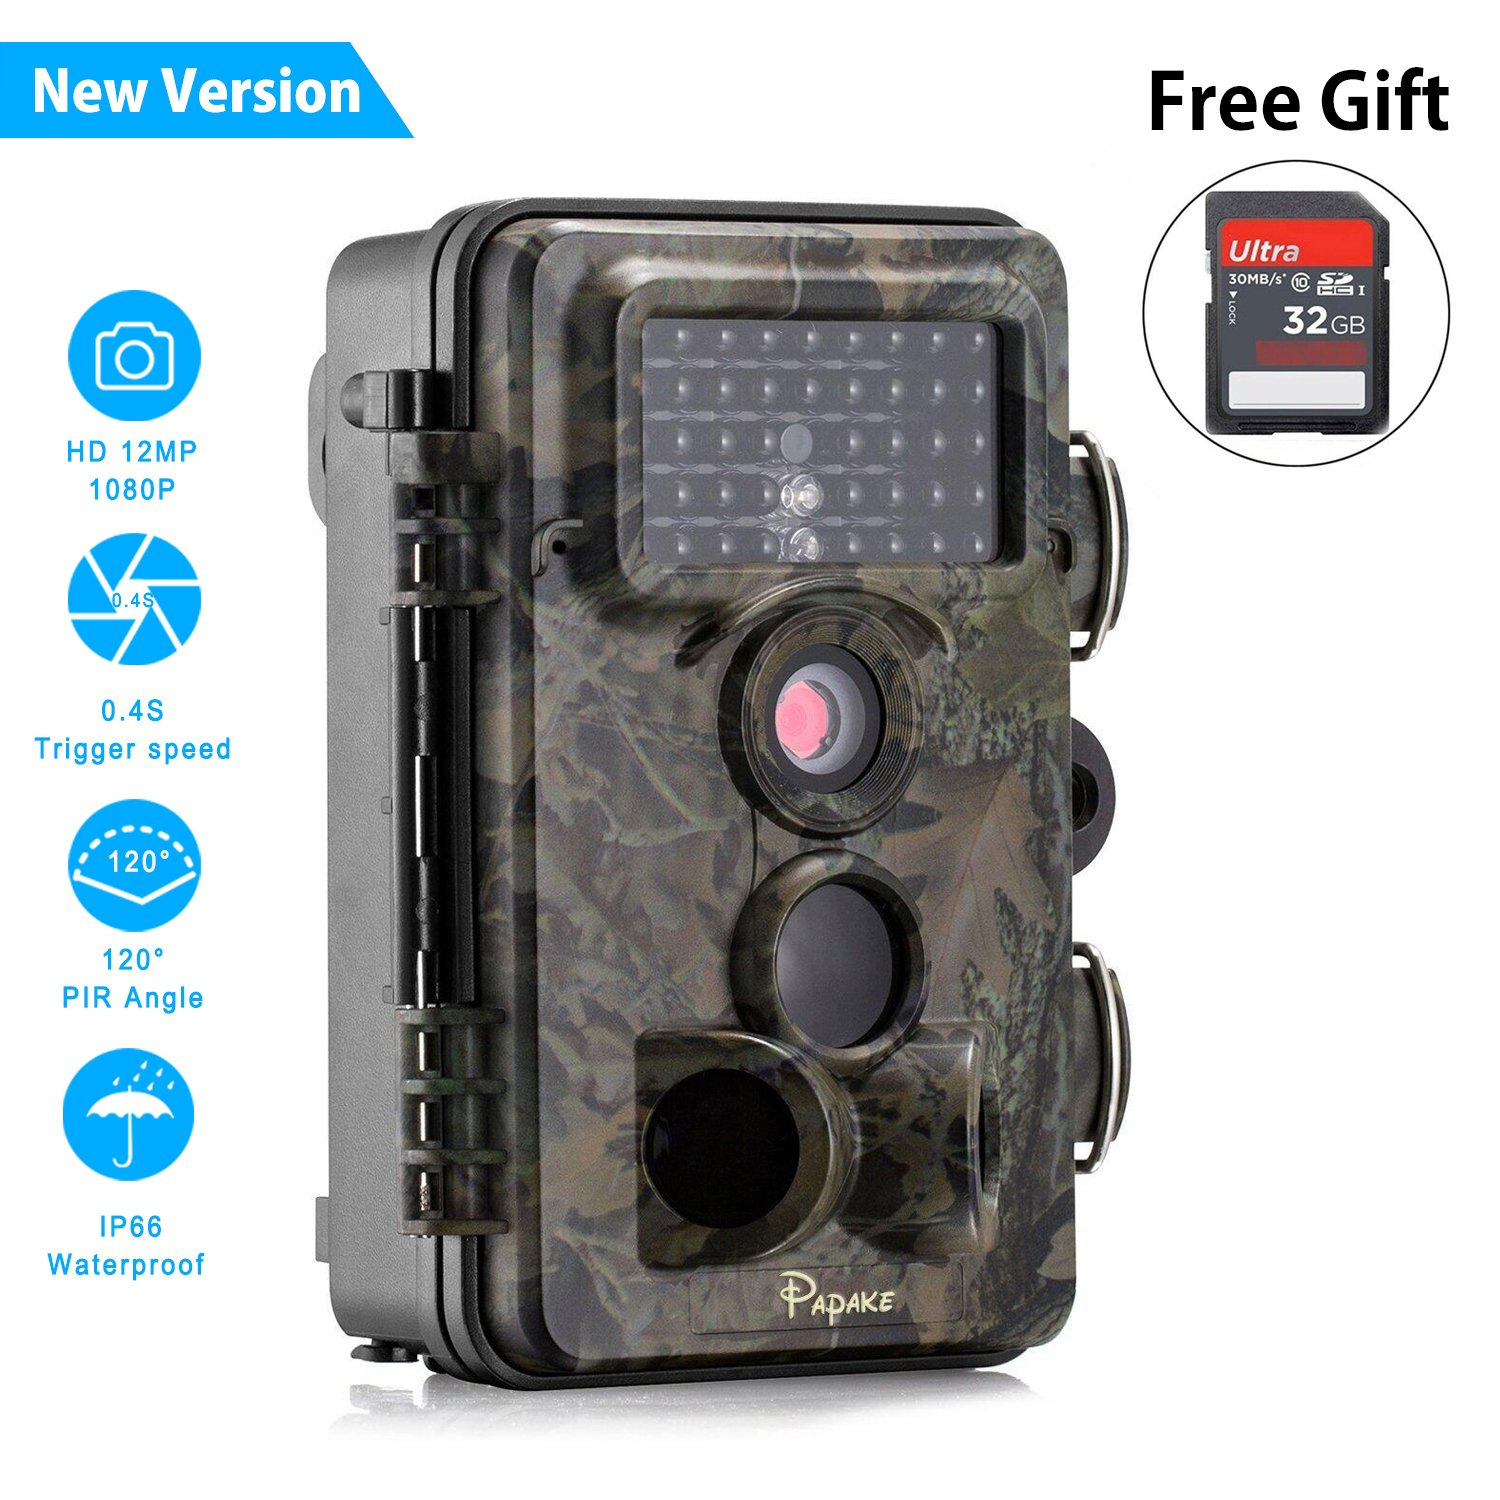 Trail Camera, Papake Wildlife Camera Hunting Game Camera with Night Vision, 1080P HD 12 MP 3 Zone Infrared Sensor IP66 Waterproof Deer Camera Surveillance Scouting (With 32G SD Card)